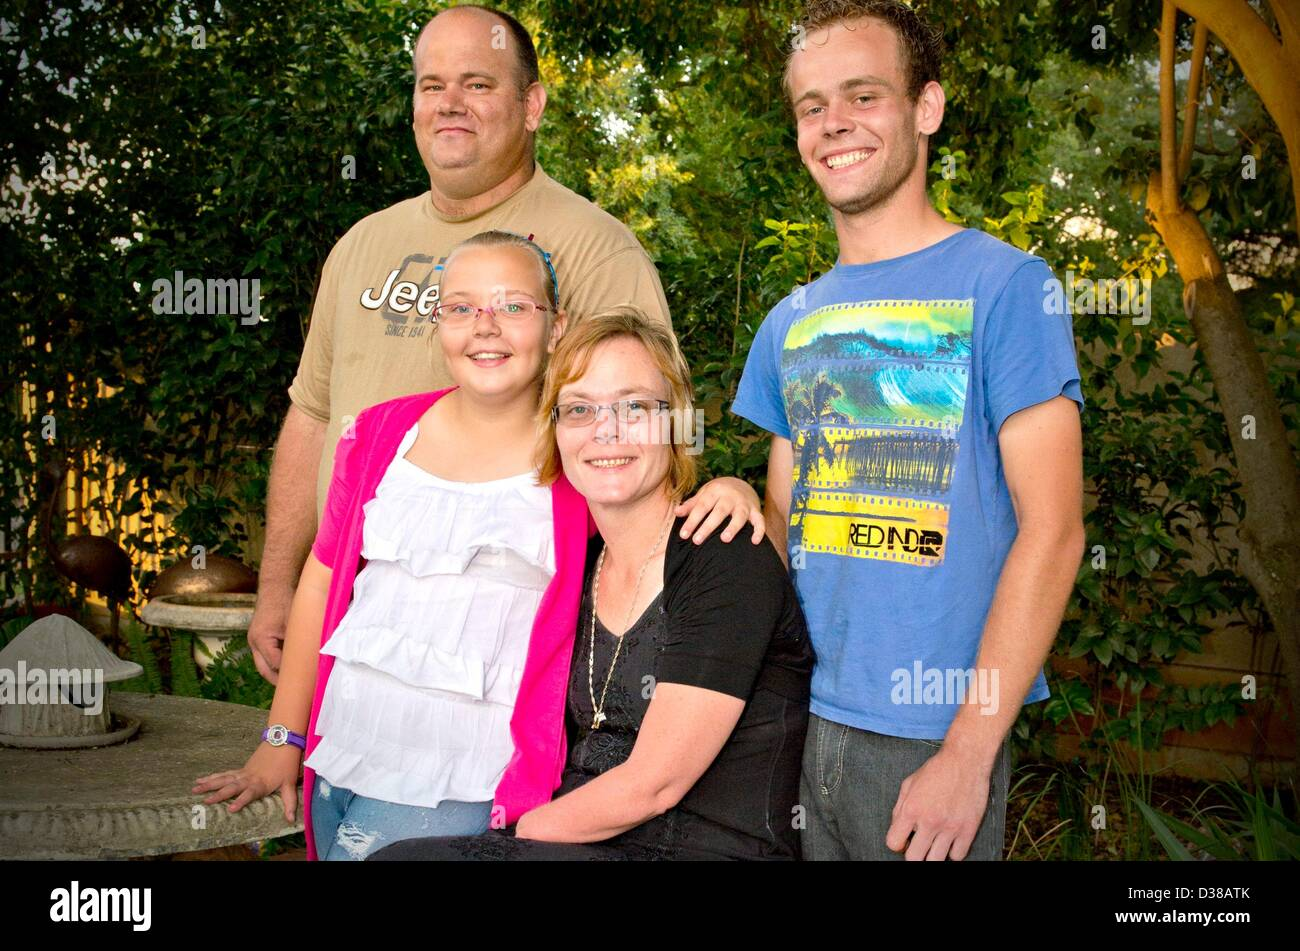 VEREENIGING, SOUTH AFRICA: Elize Henwood her daughter Elzandre, her husband Alex and their son, on February 2, 2013, - Stock Image